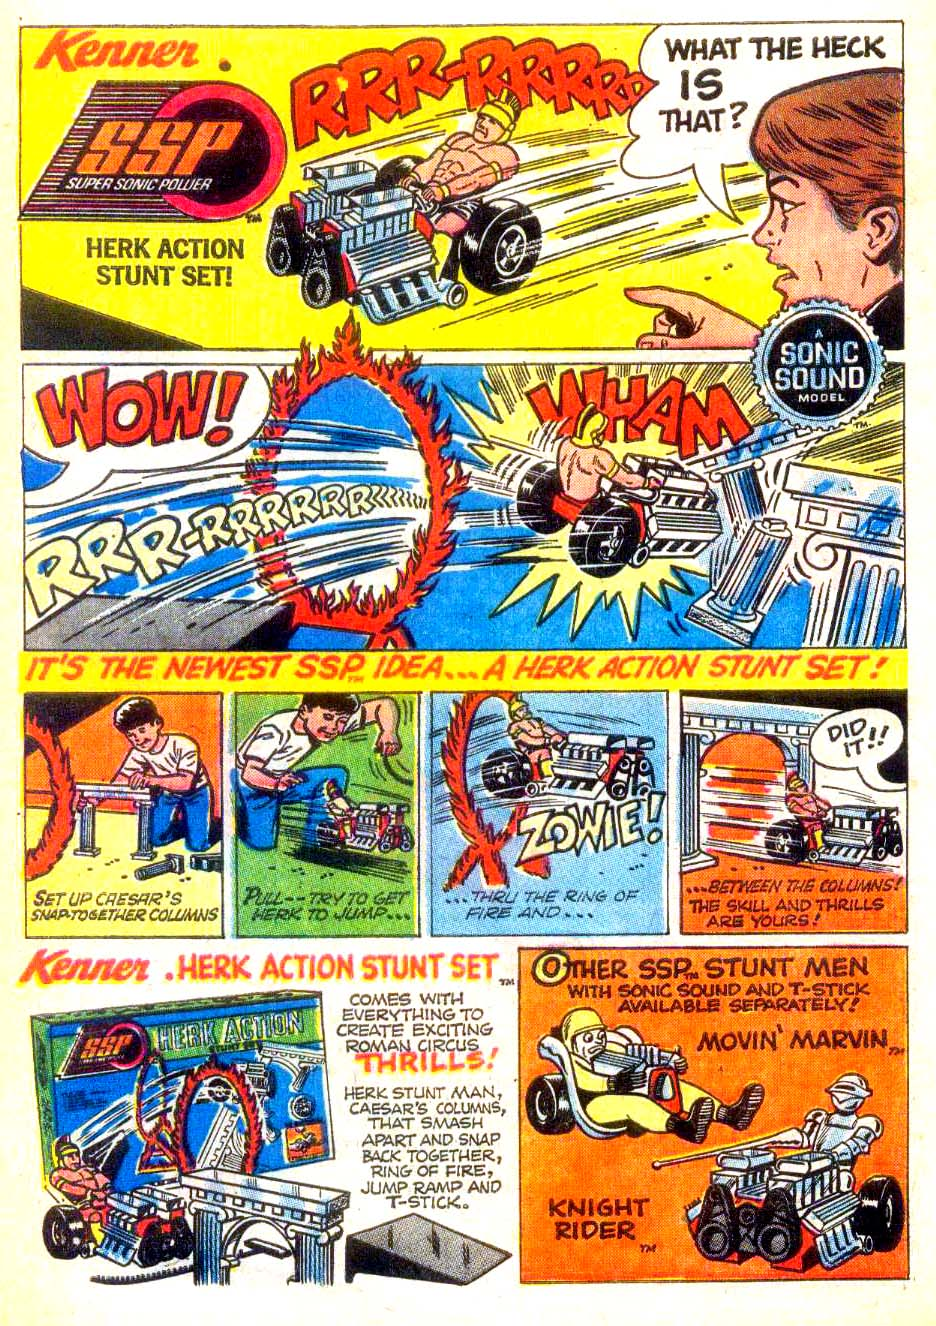 1972 Kenner Fun Catalog (4)